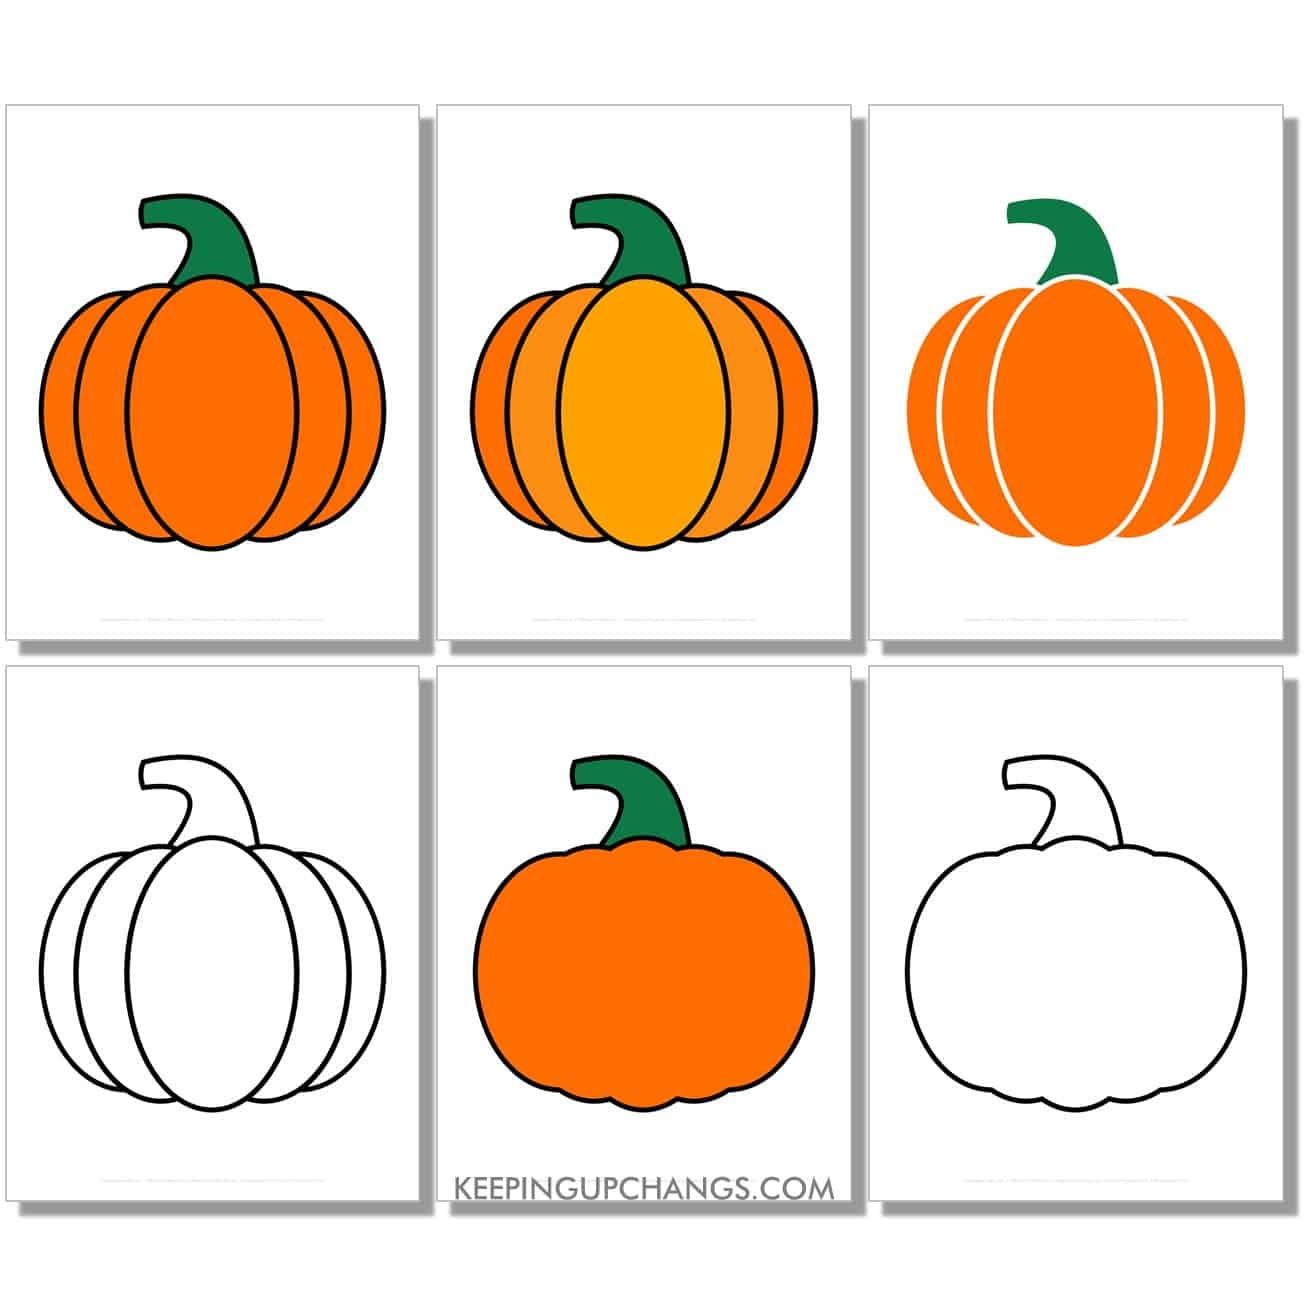 free large classic pumpkin in color, black and white, silhouette, full size page.